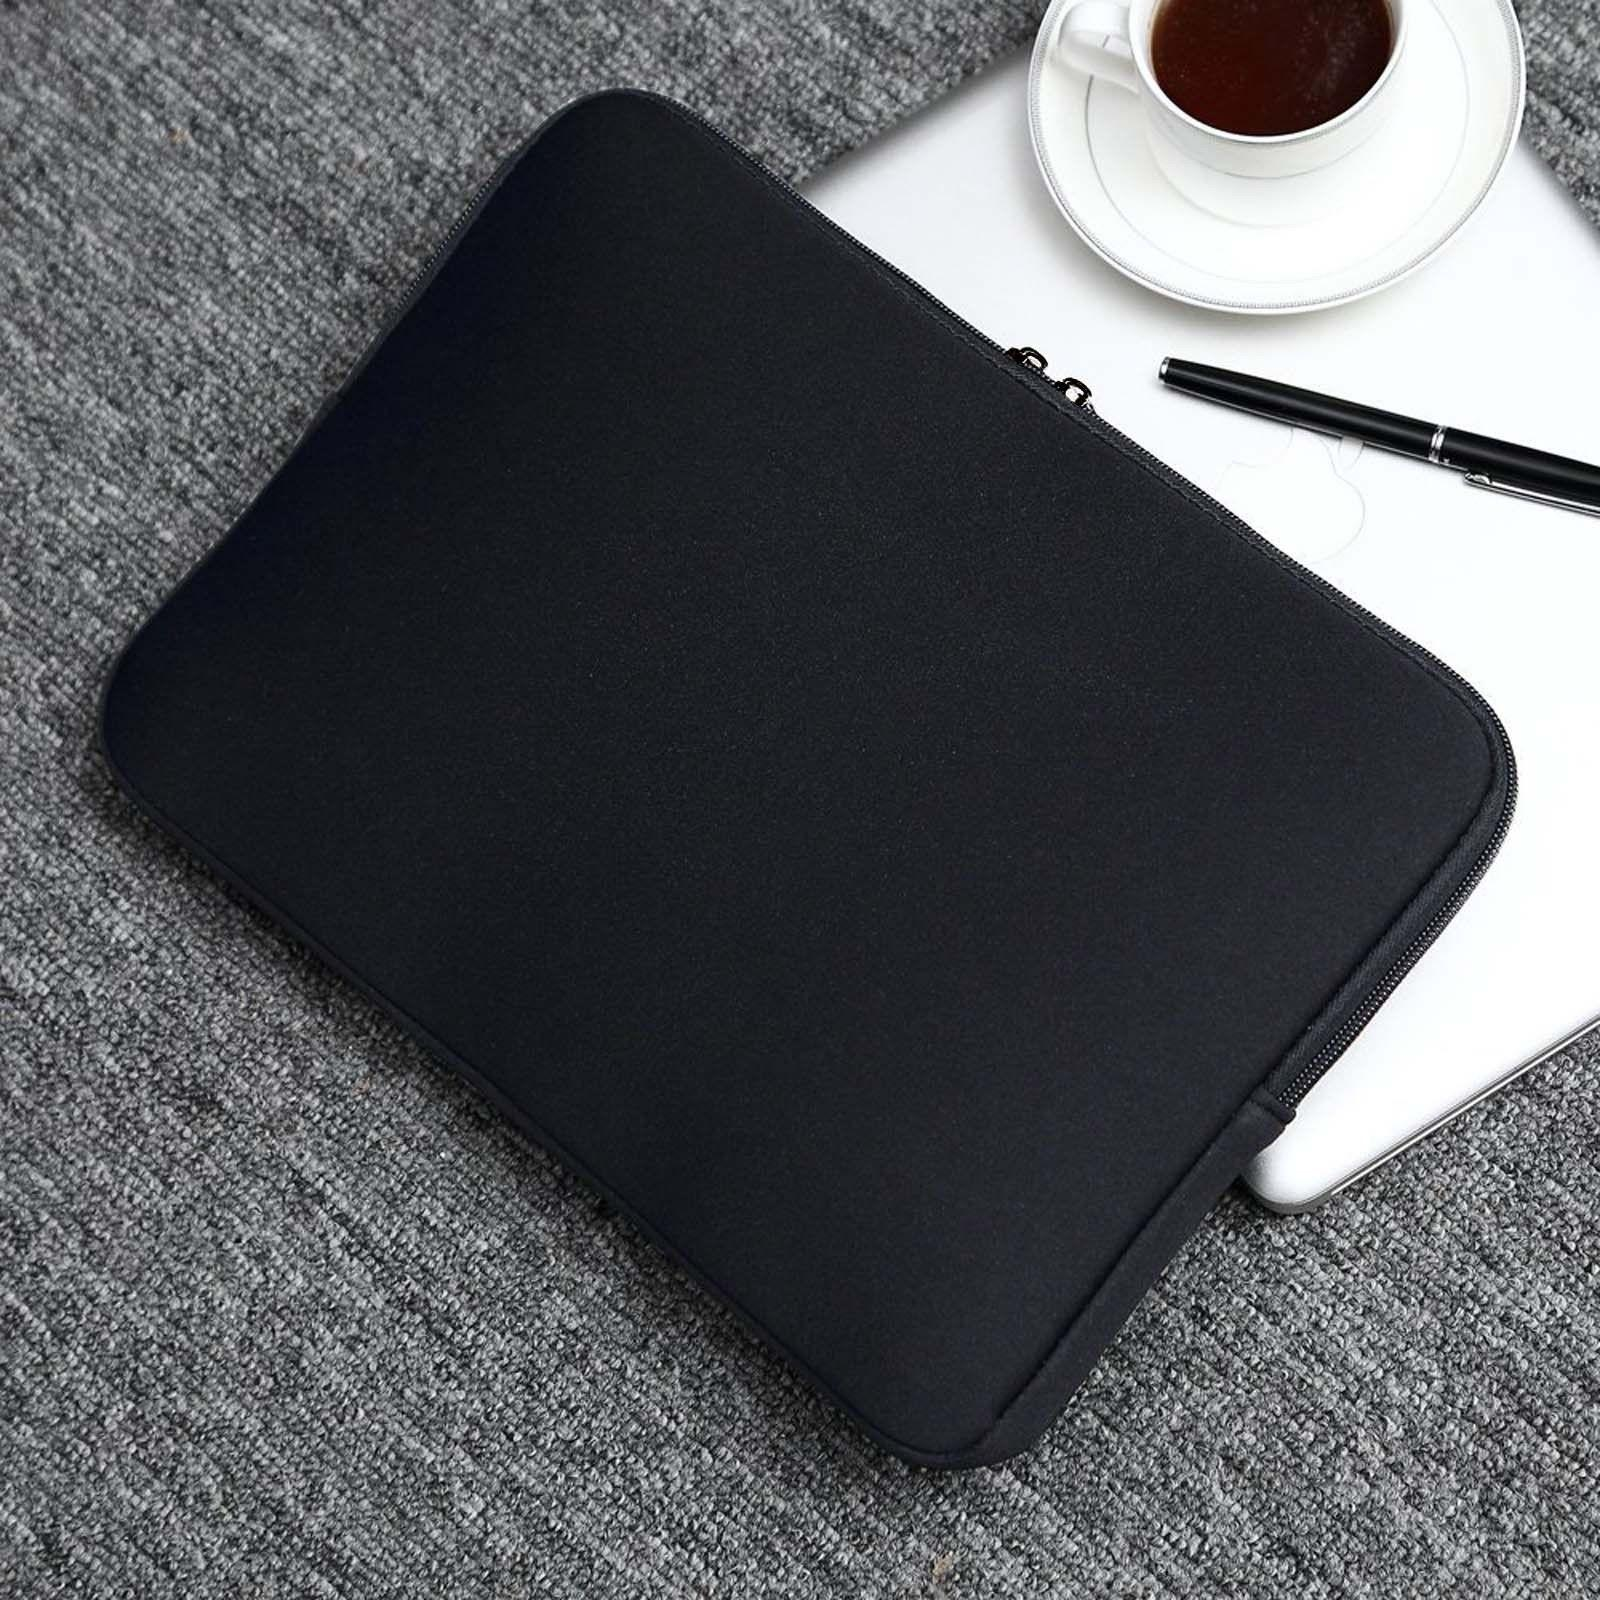 Laptop Sleeve Case Bag for iPad Pro / NEW iPad 12.9 Inch Cas